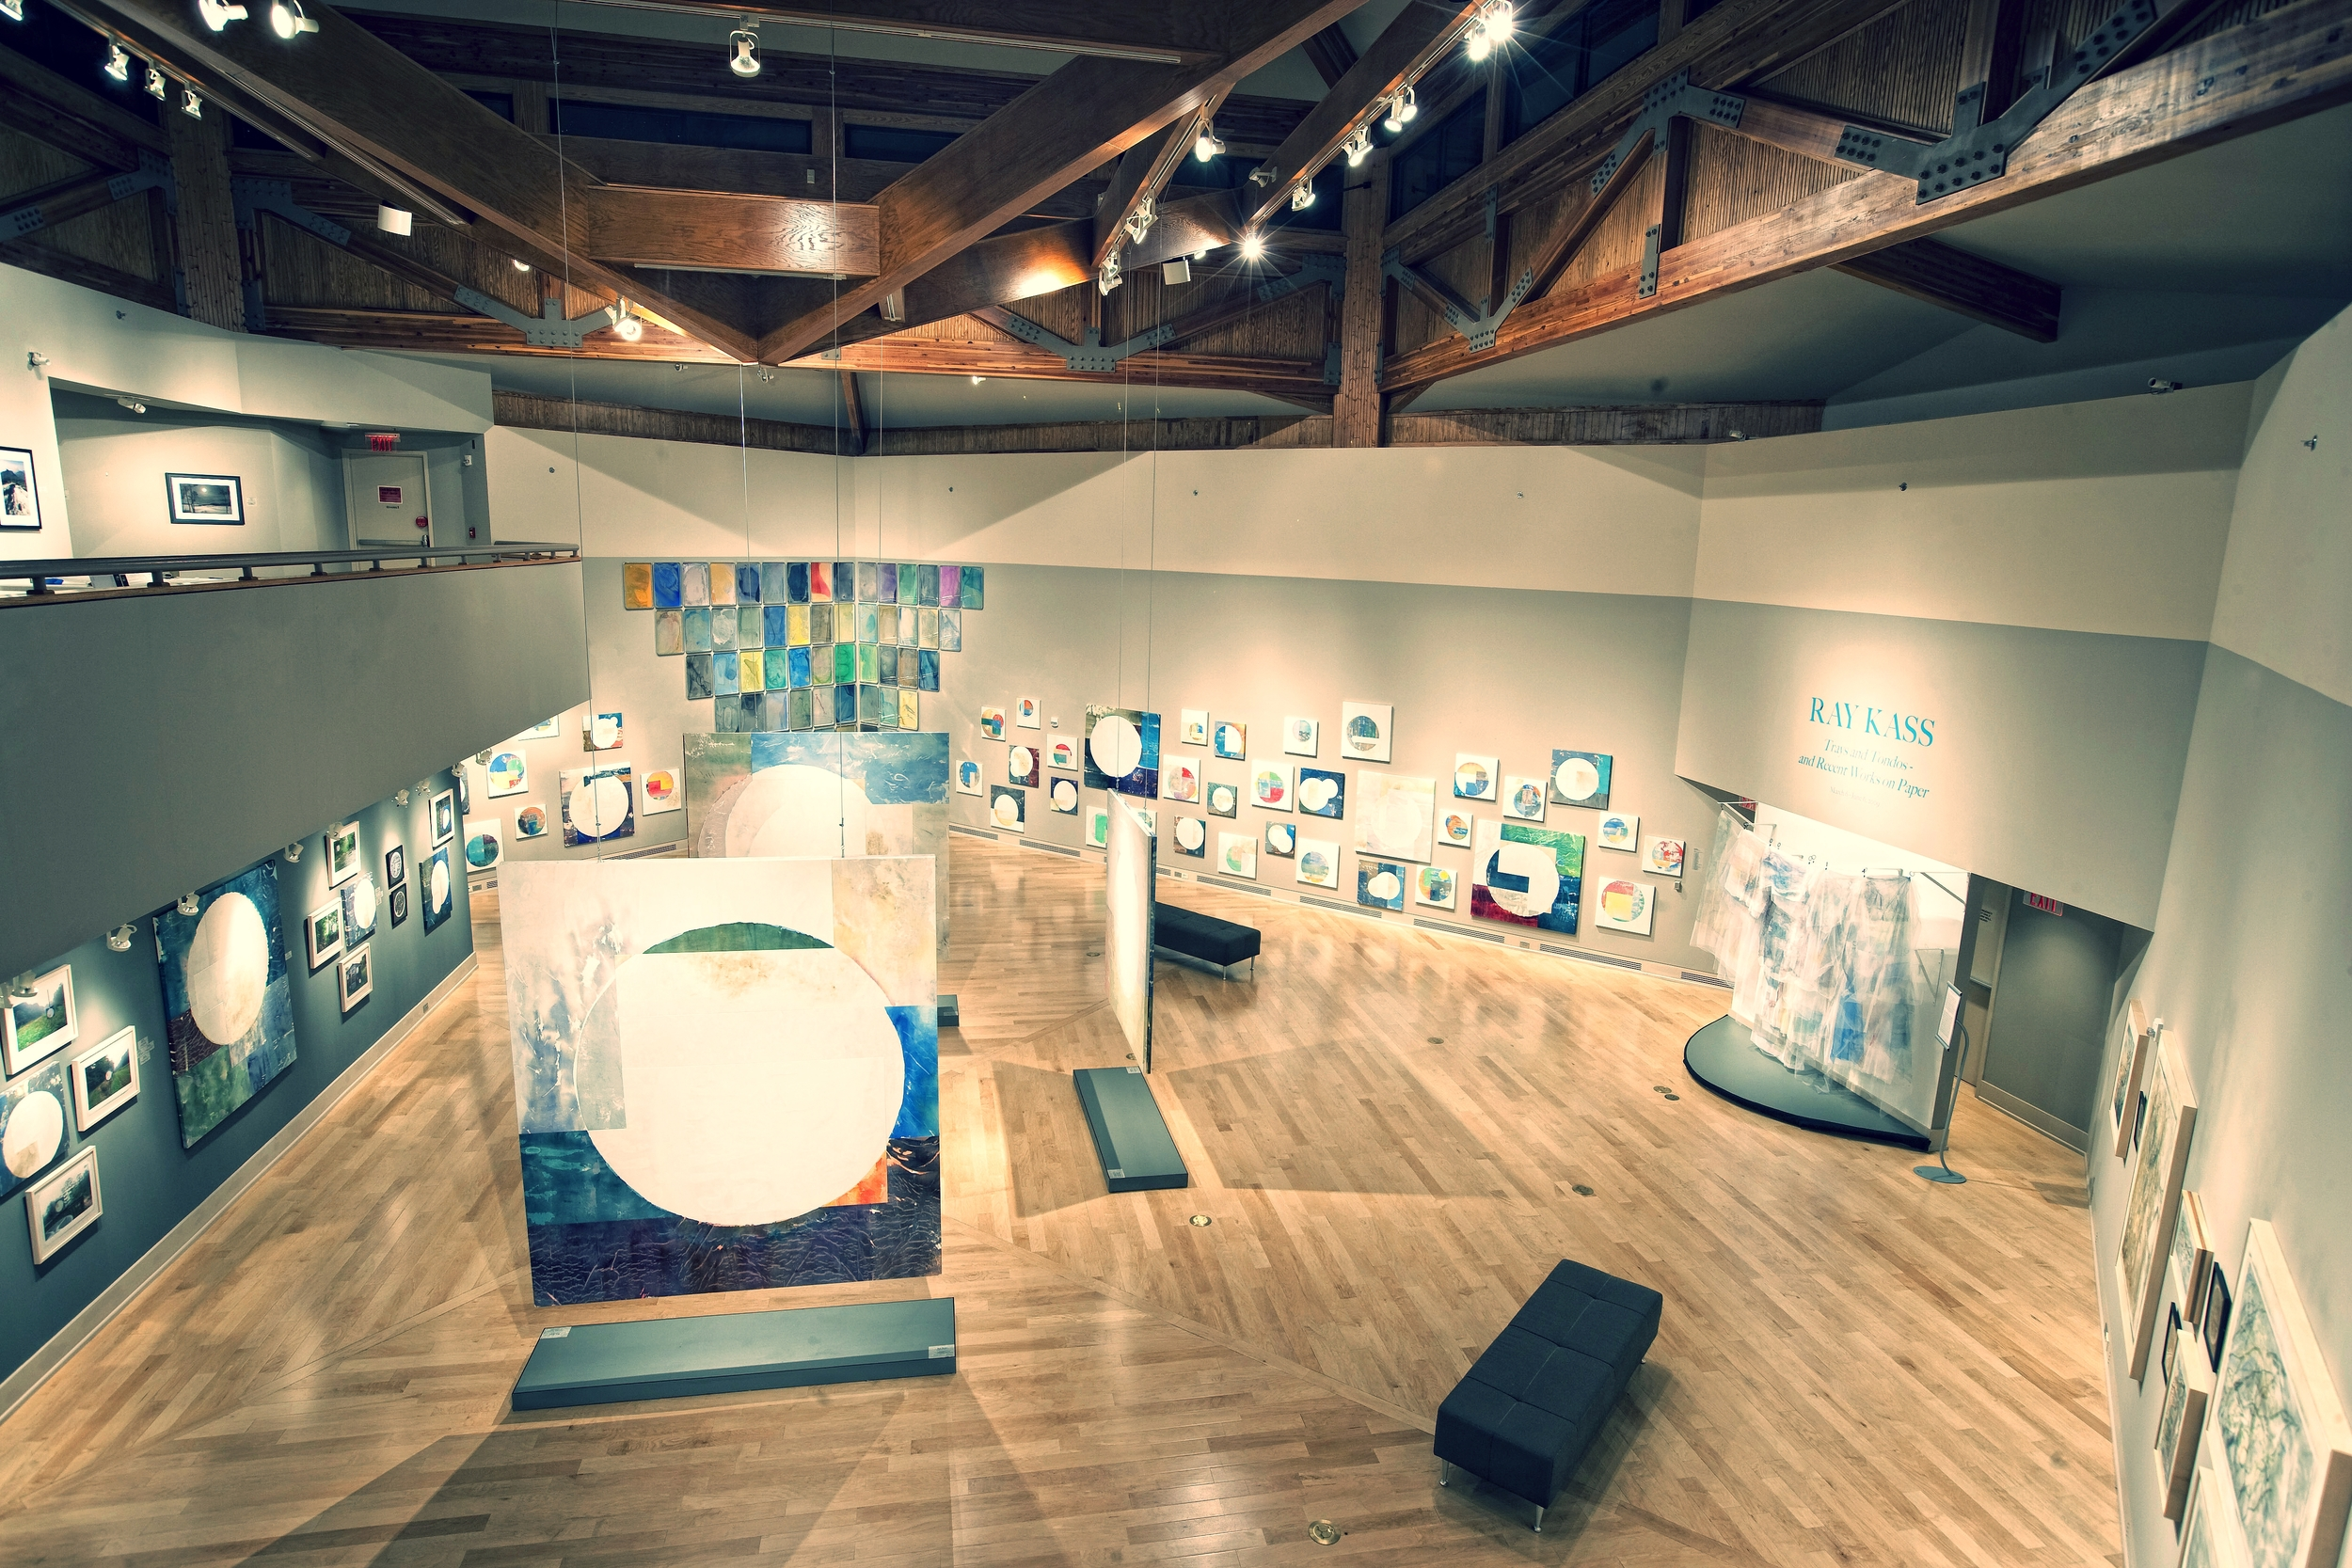 Kass exhibition installed at the Turchin Art Center PHOTOGRAPH: APPALACHIAN STATE UNIVERSITY, BOONE, NC, 2009